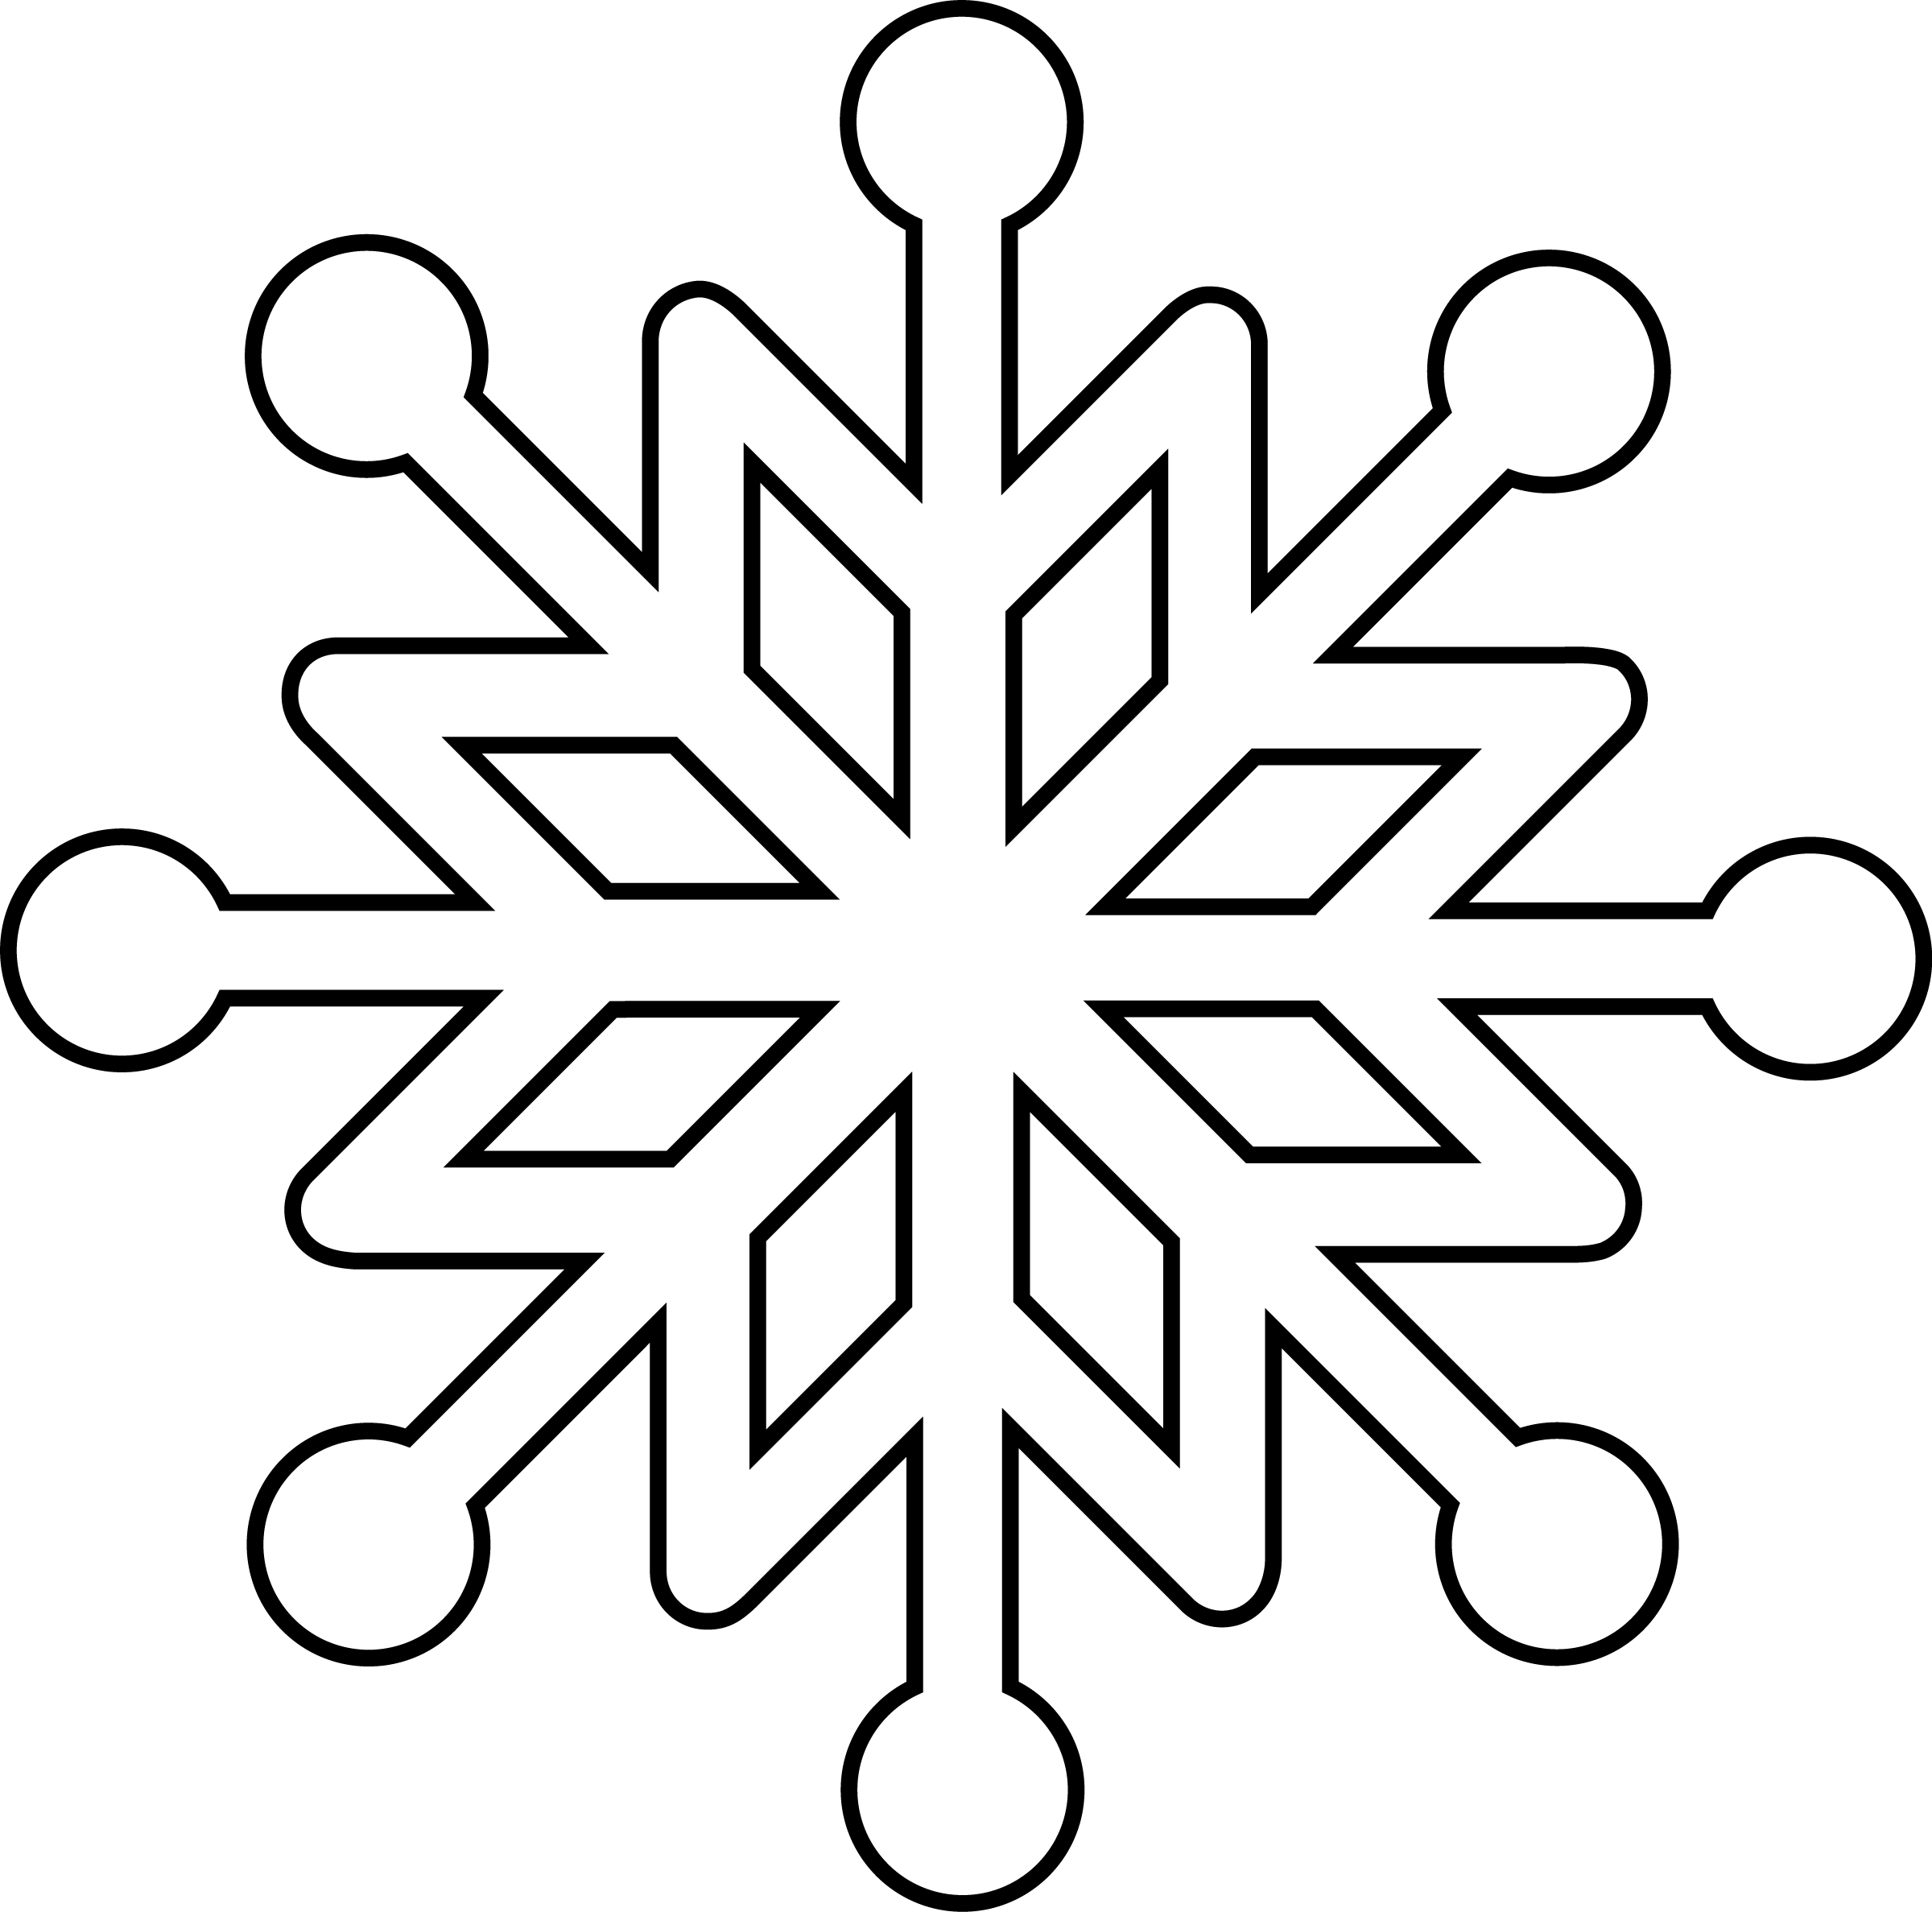 Snowflake Coloring Page at GetDrawings | Free download